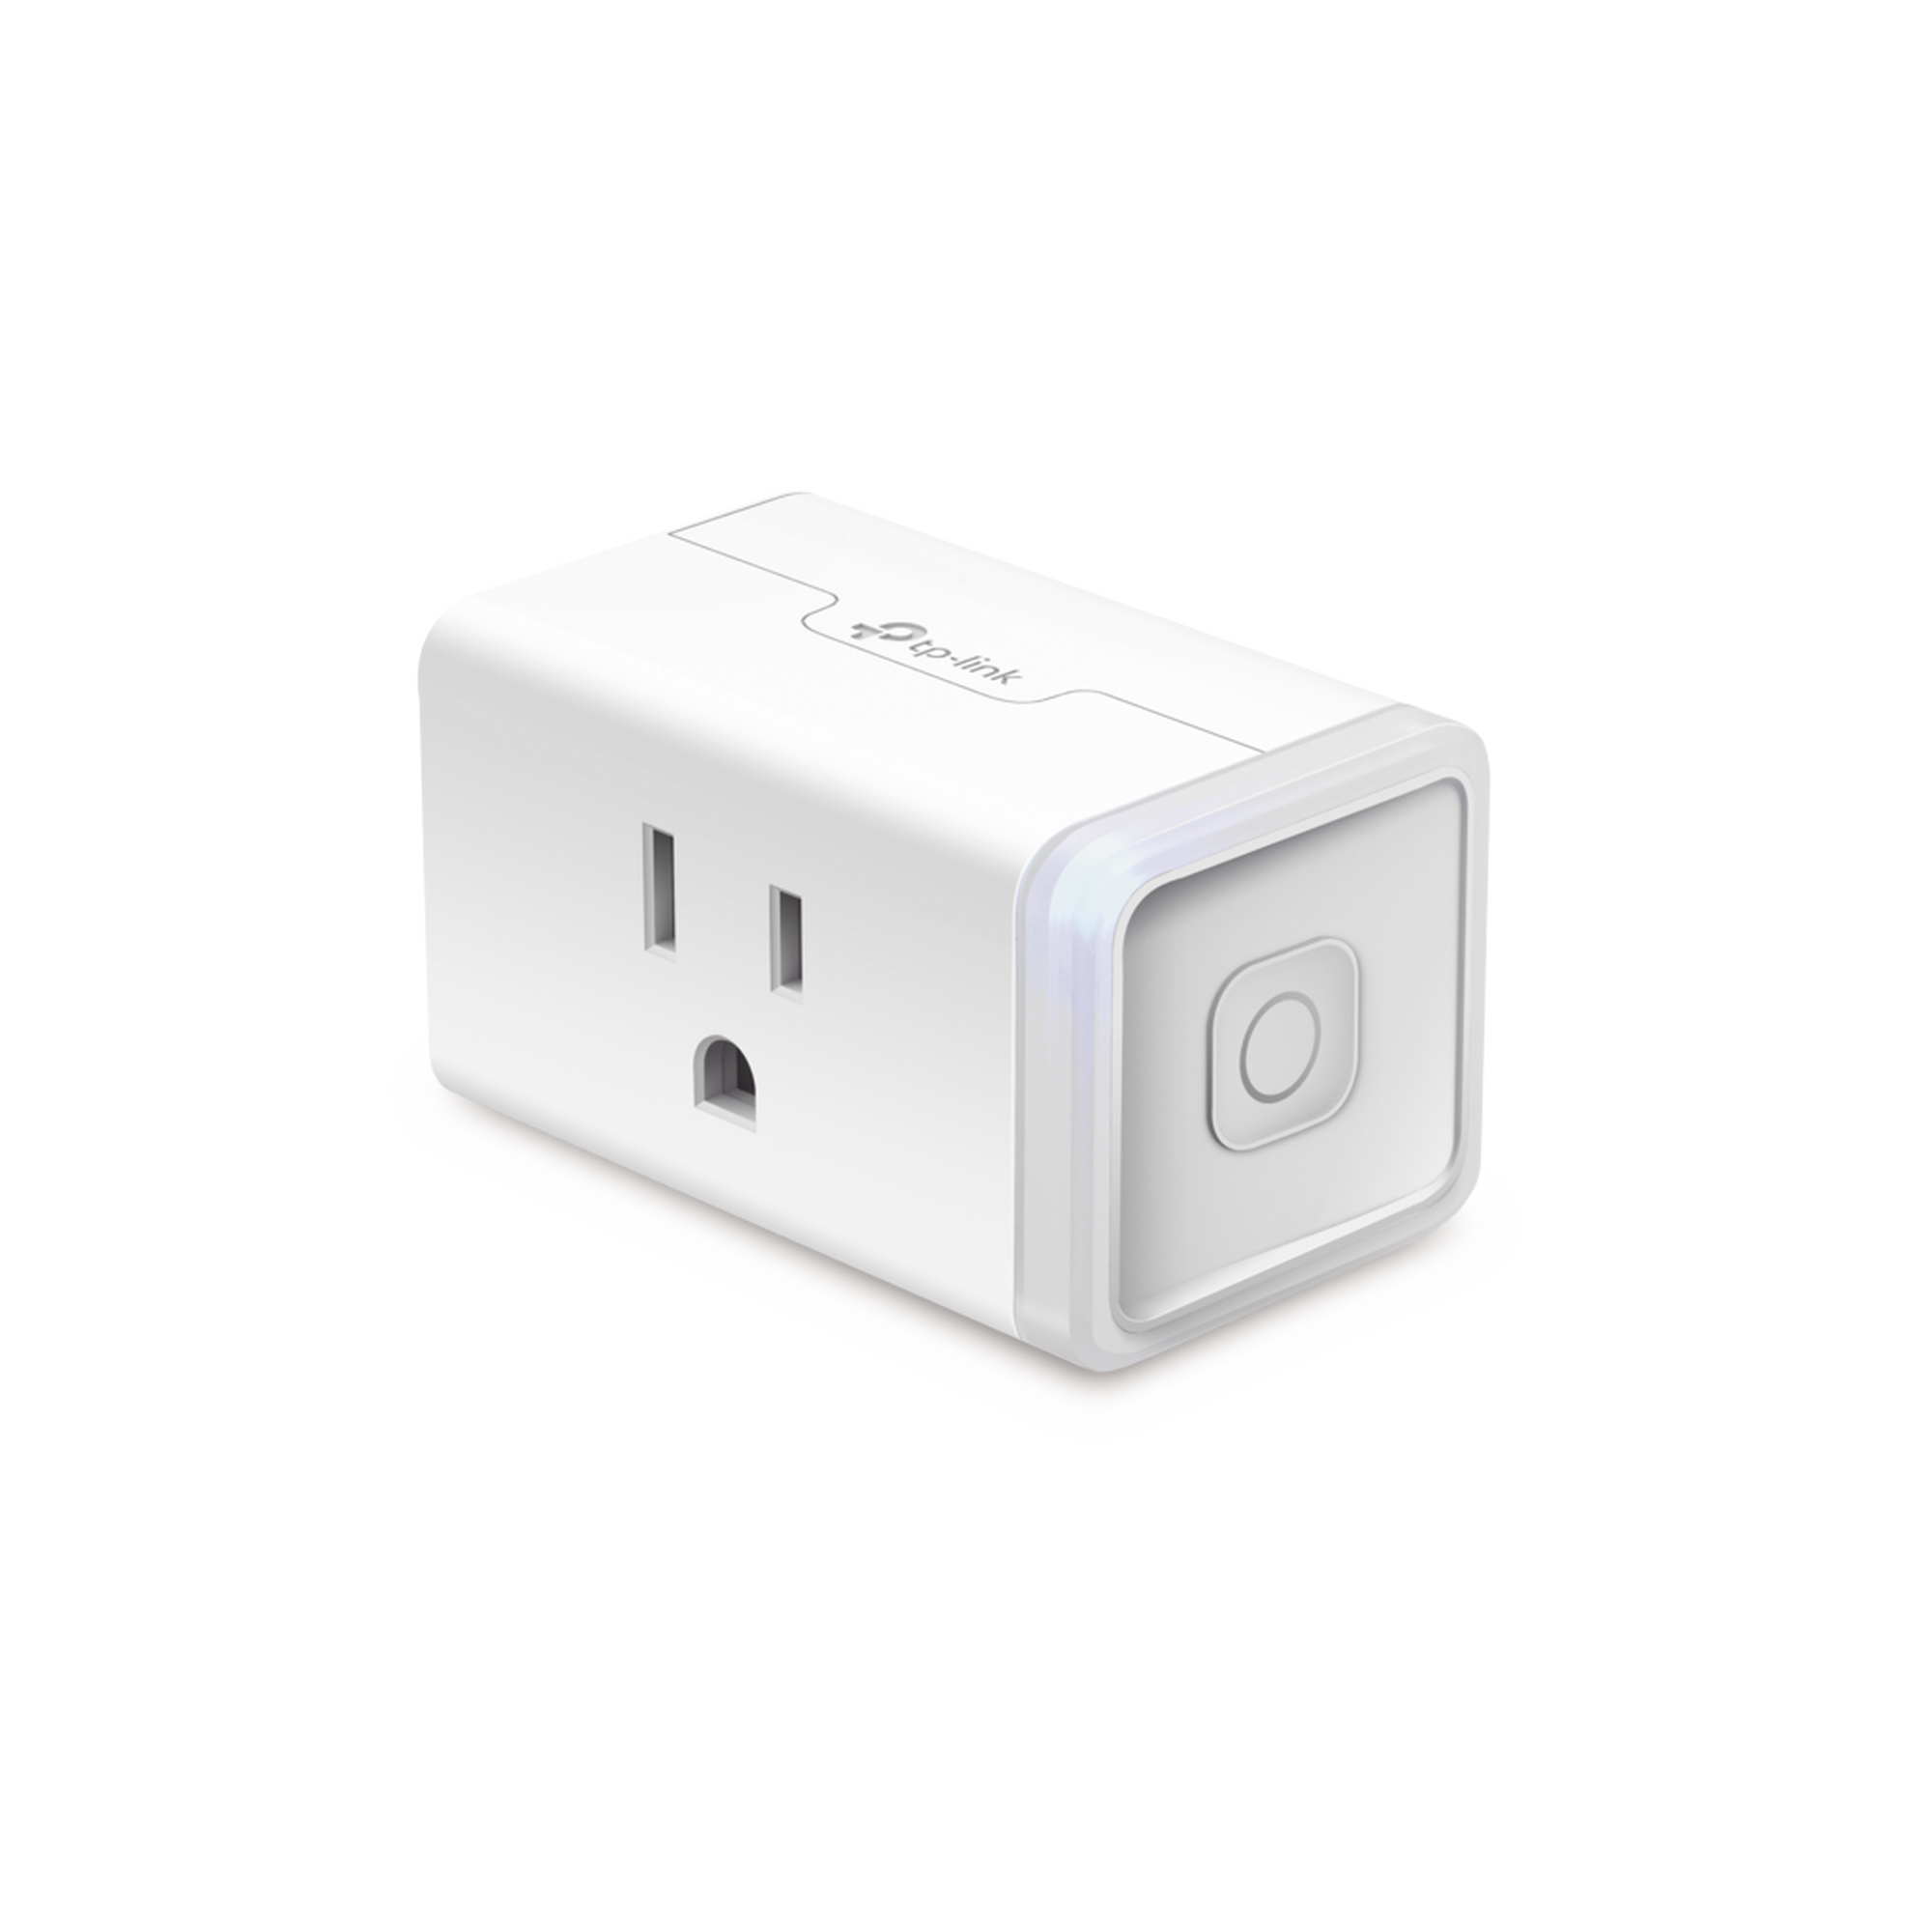 Mini tomacorriente inteligente Wi-Fi, 100 - 120V~, 50/60Hz, 15.0A, compatible con Amazon Alexa y Google Assistant, color blanco.